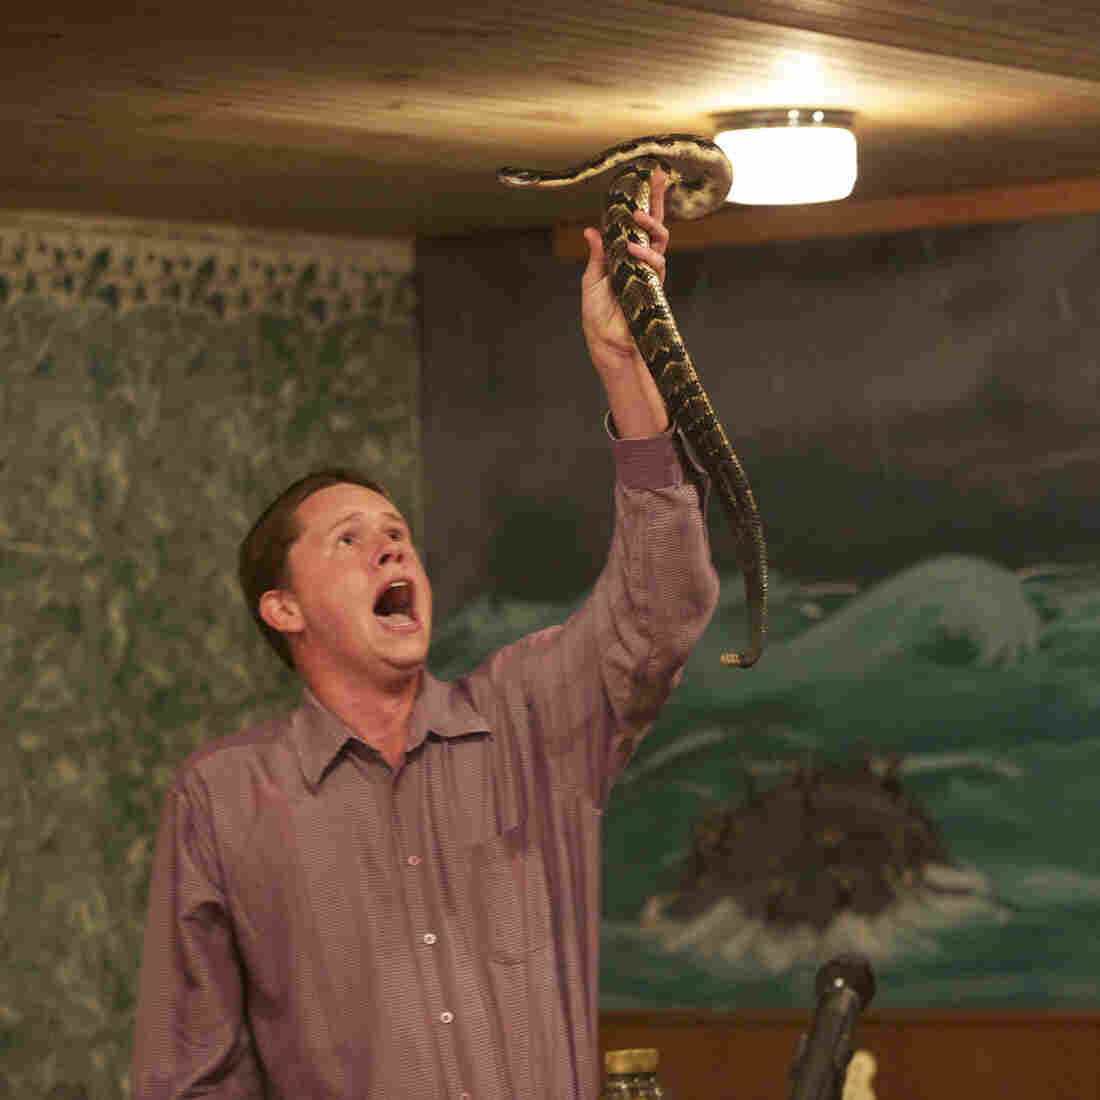 Snake-Handling Preachers Open Up About 'Takin' Up Serpents'